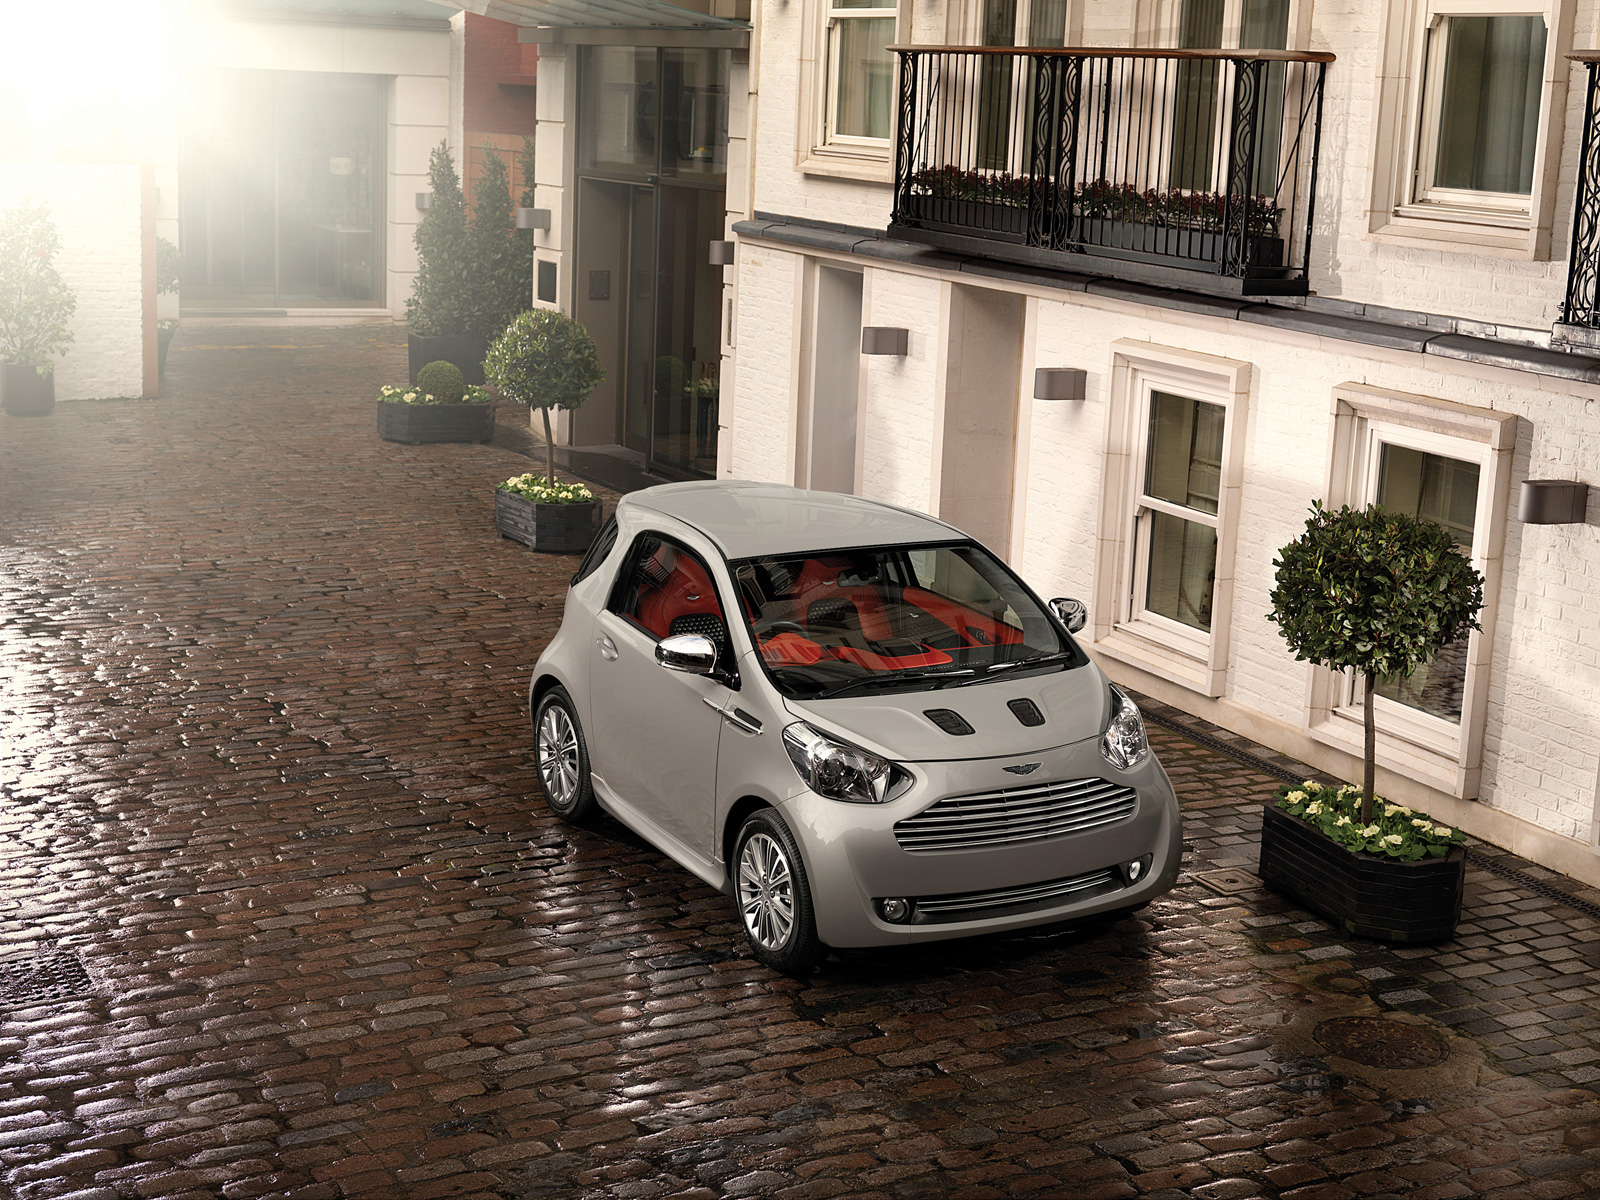 Aston Martin Cygnet – Luxury Subcompact to be Available Soon